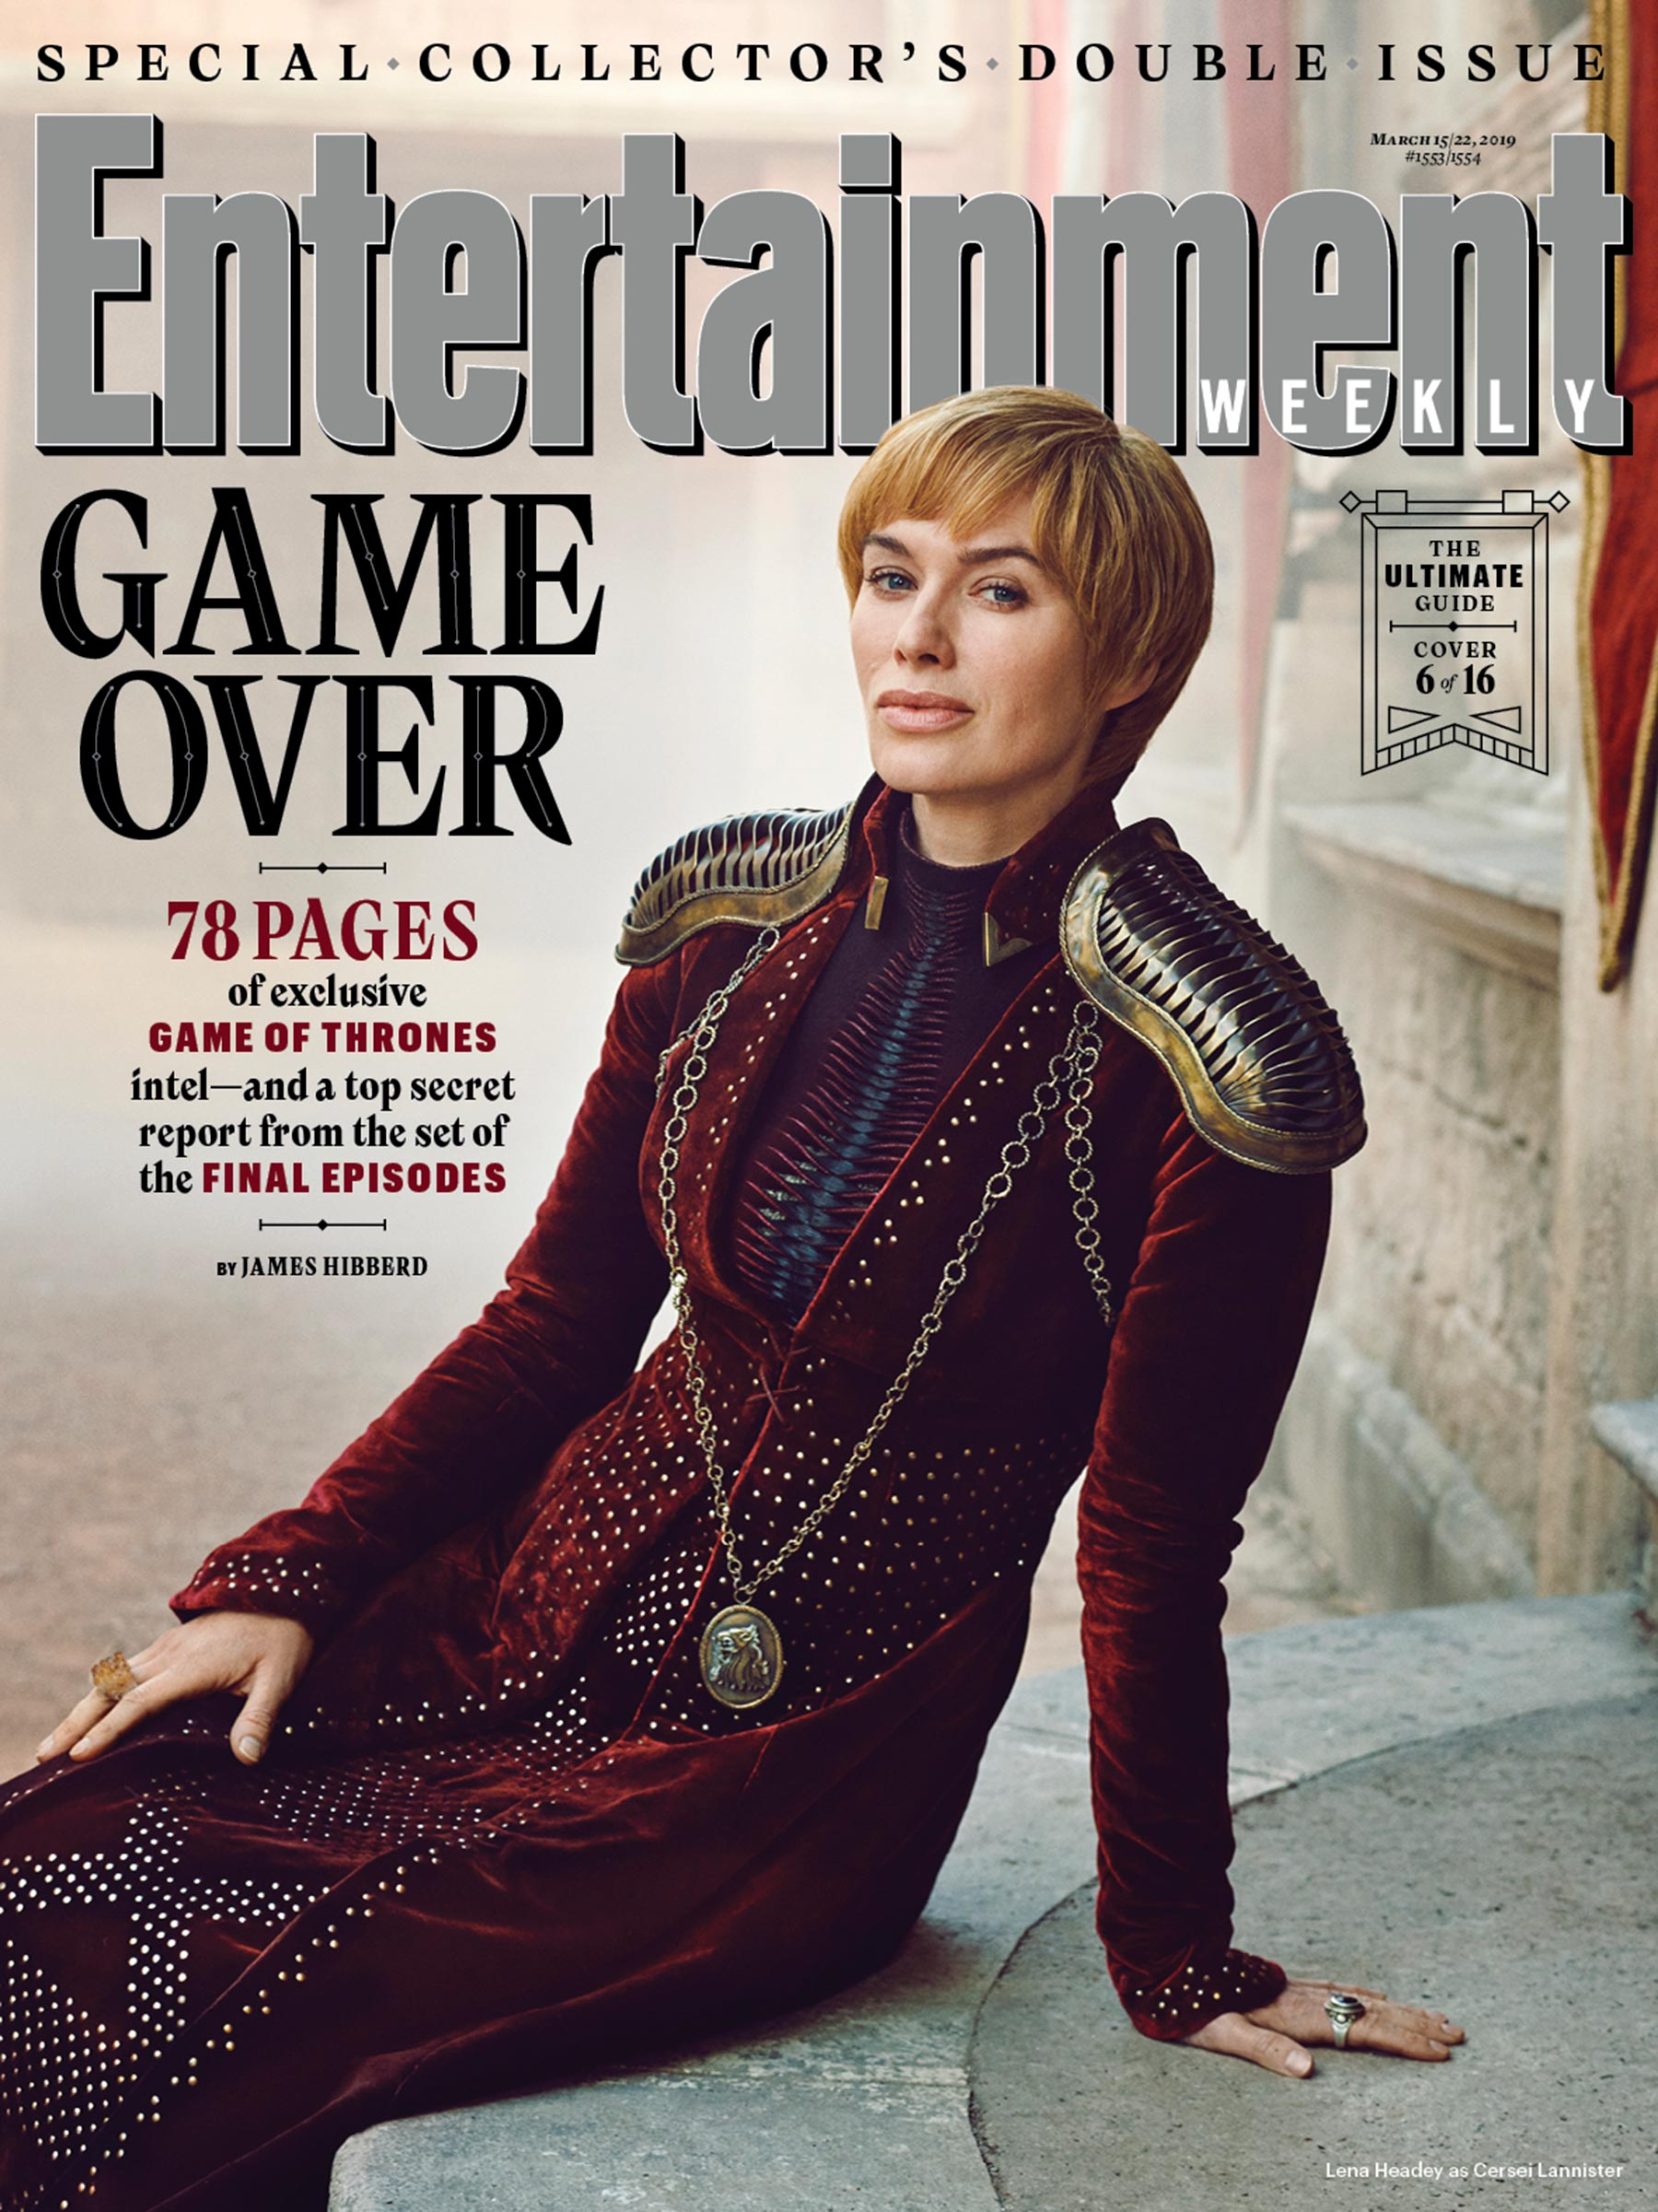 Entertainment Weekly Cover - March 2019 - Lena Headey as Cersei Lannister